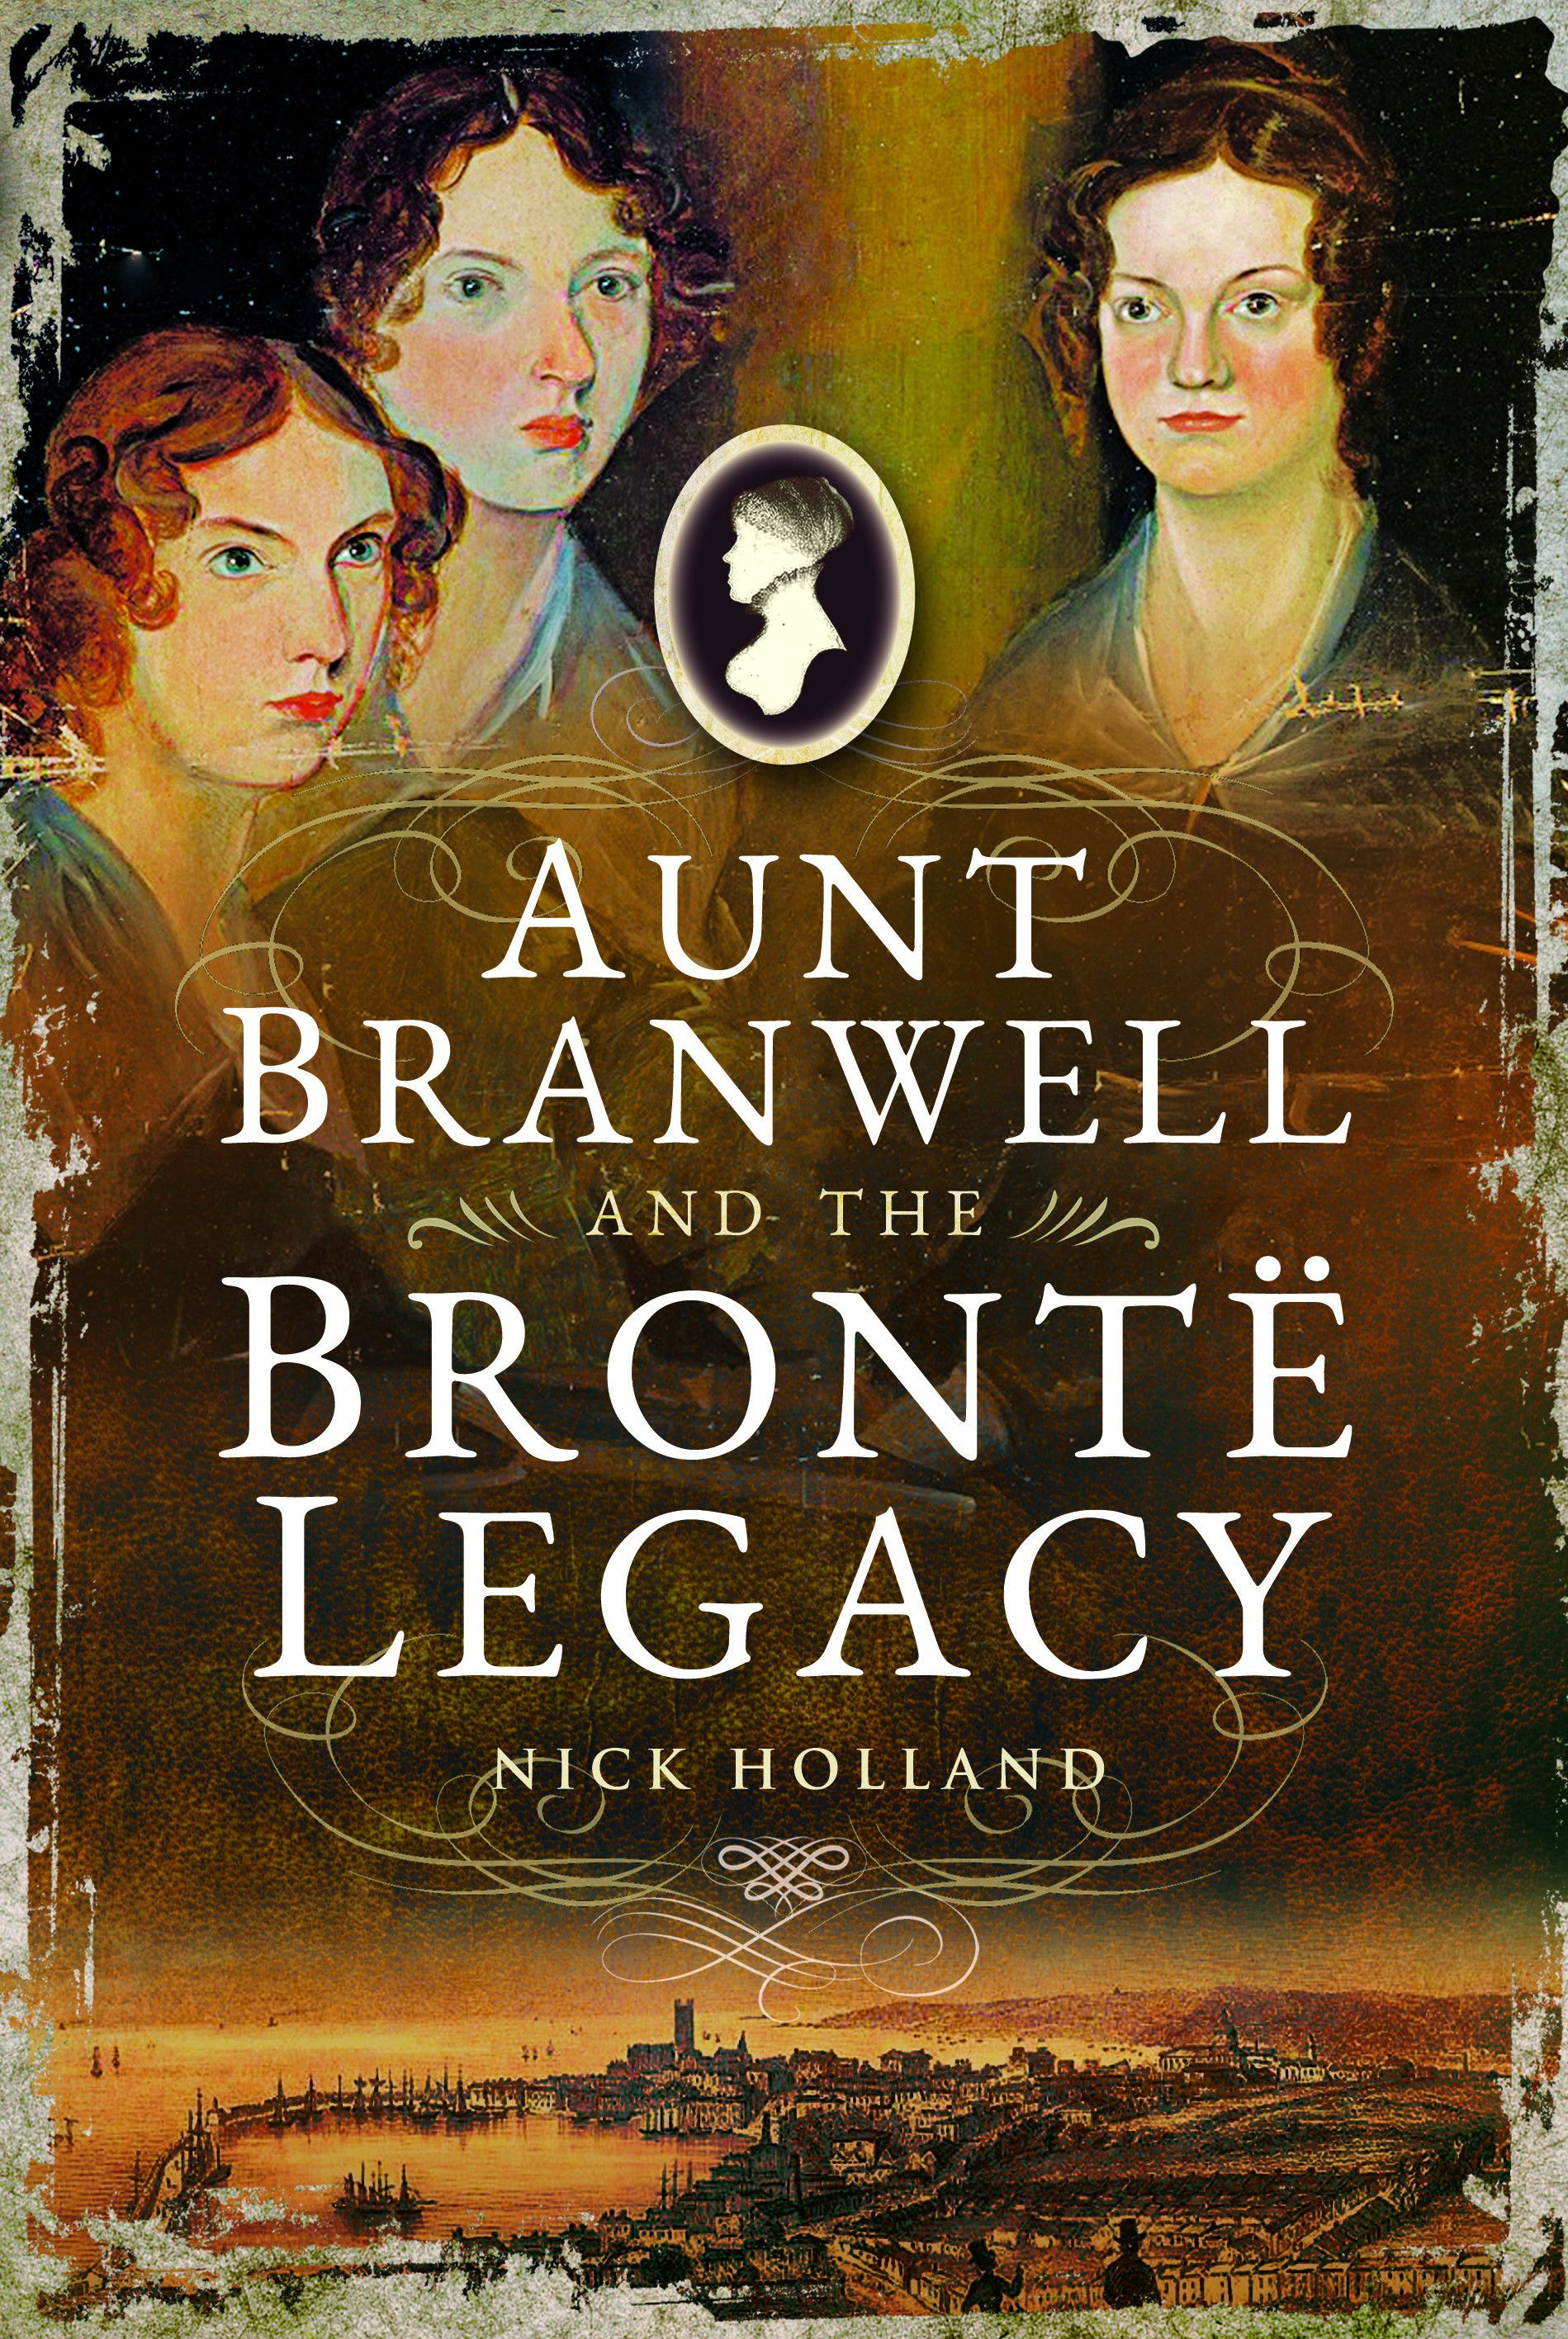 Aunt Branwell and the Brontë Legacy Ebook, Legacy, This book